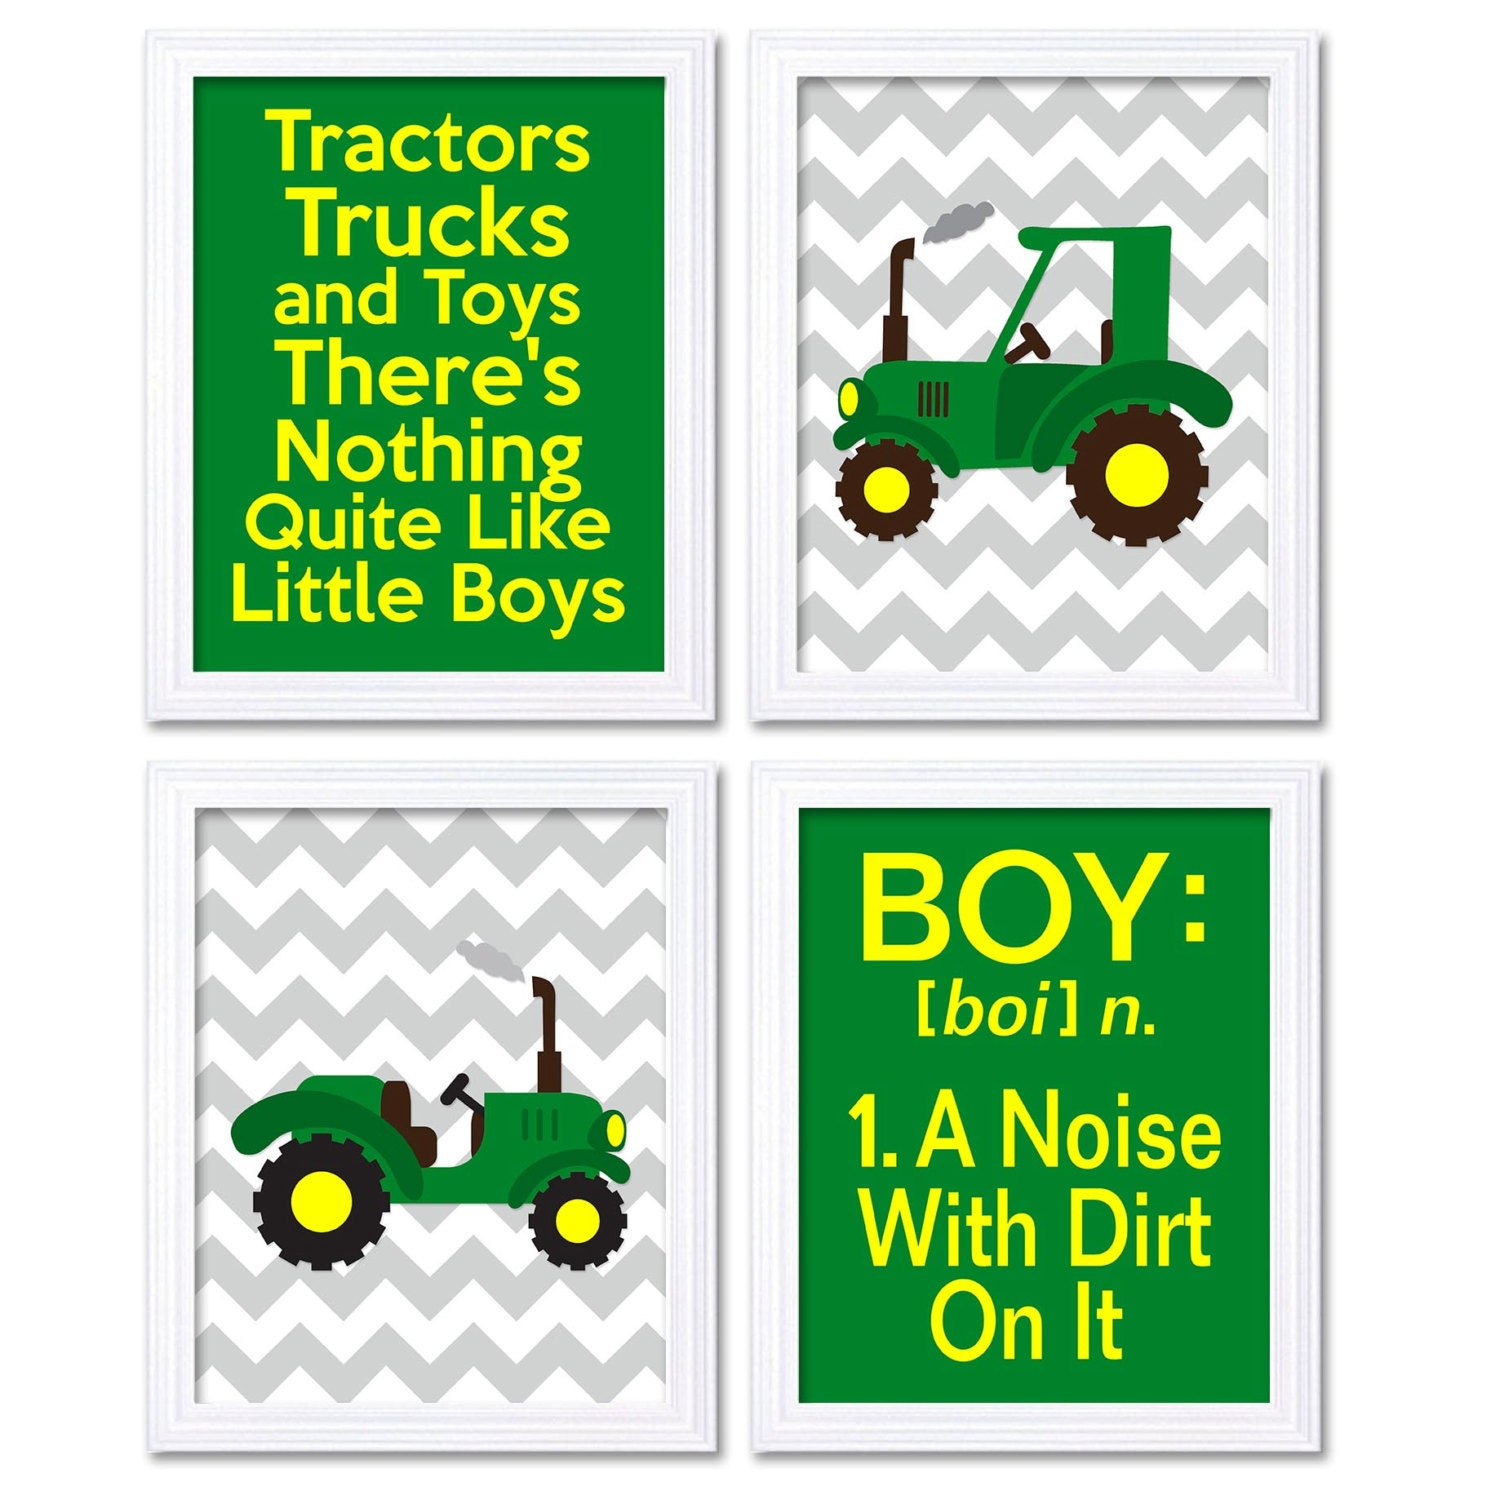 Nursery Art Tractors Trucks Toys Theres Nothing Quite Like Little Boys Prints Set of 4 Green Yellow